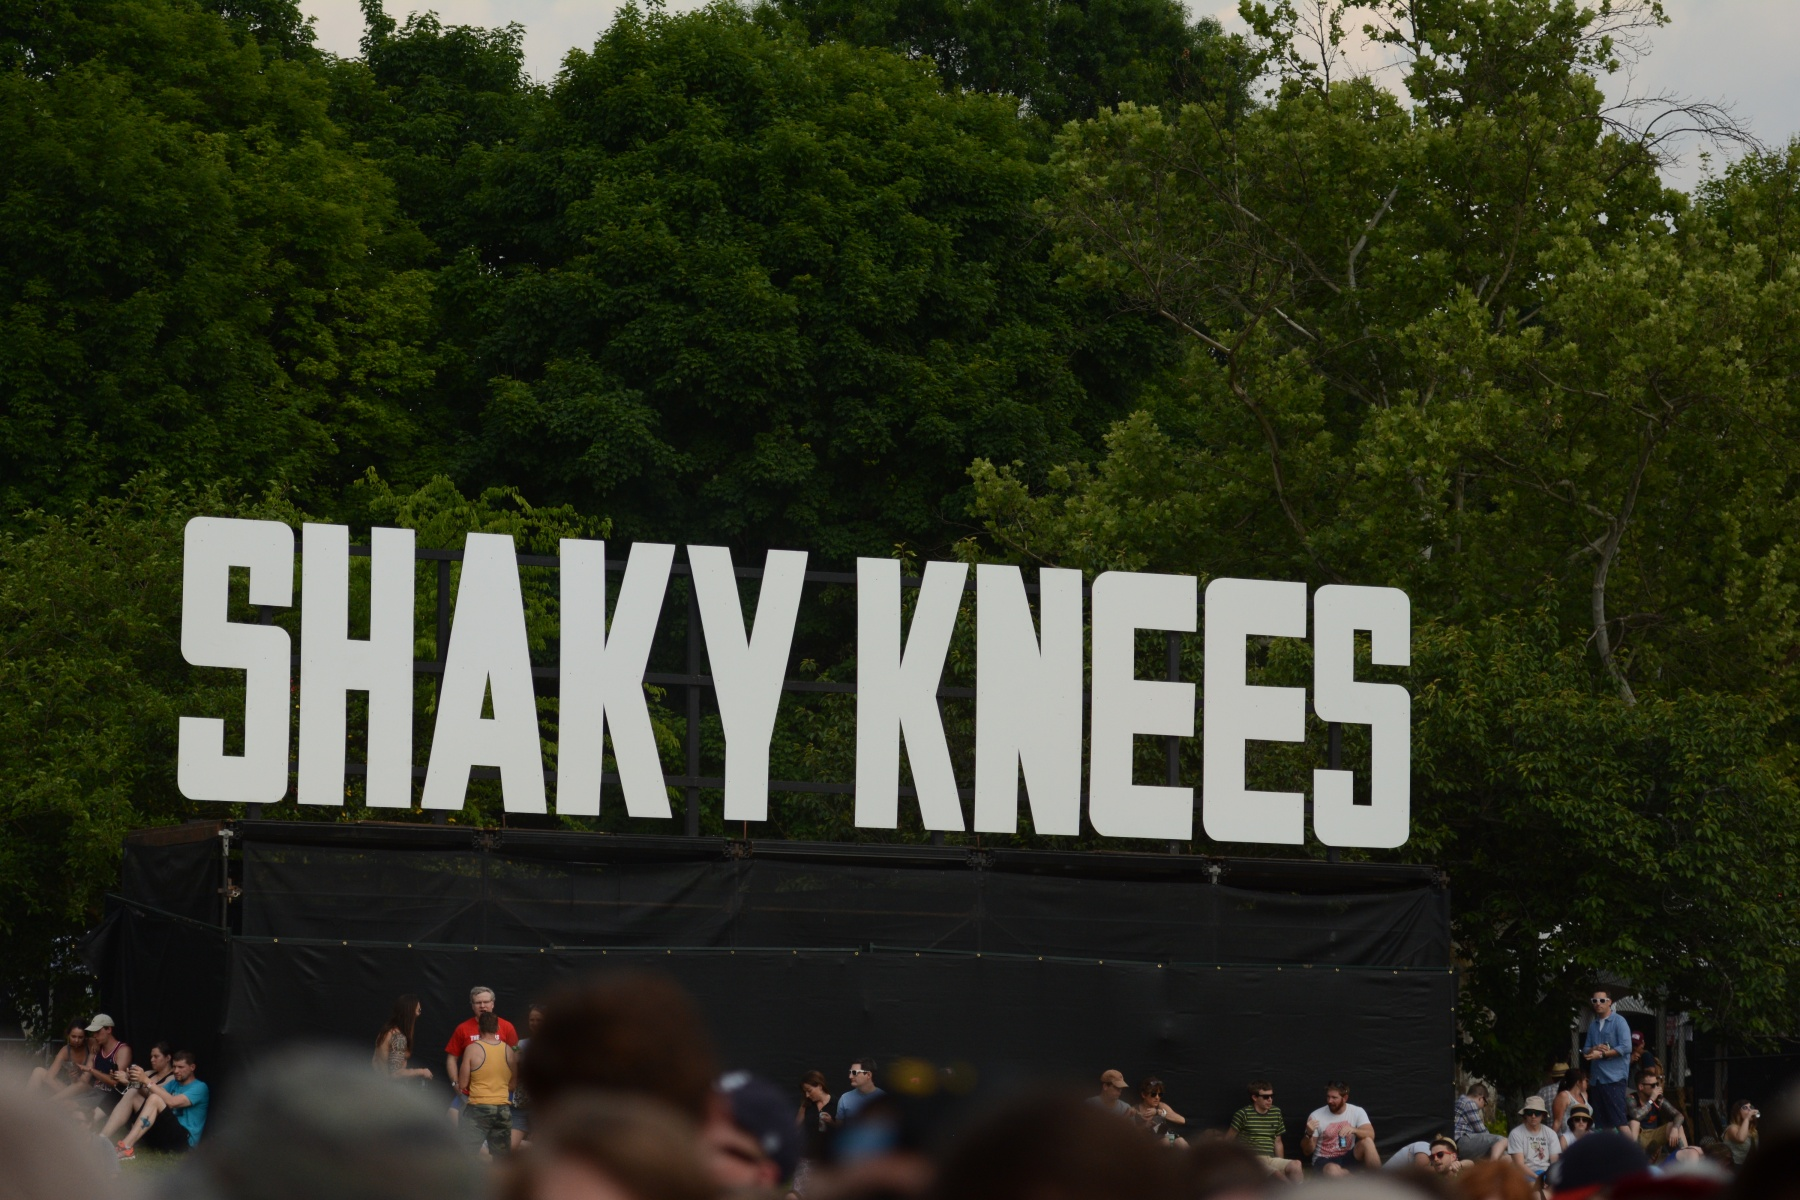 WVCW goes to Shaky Knees!